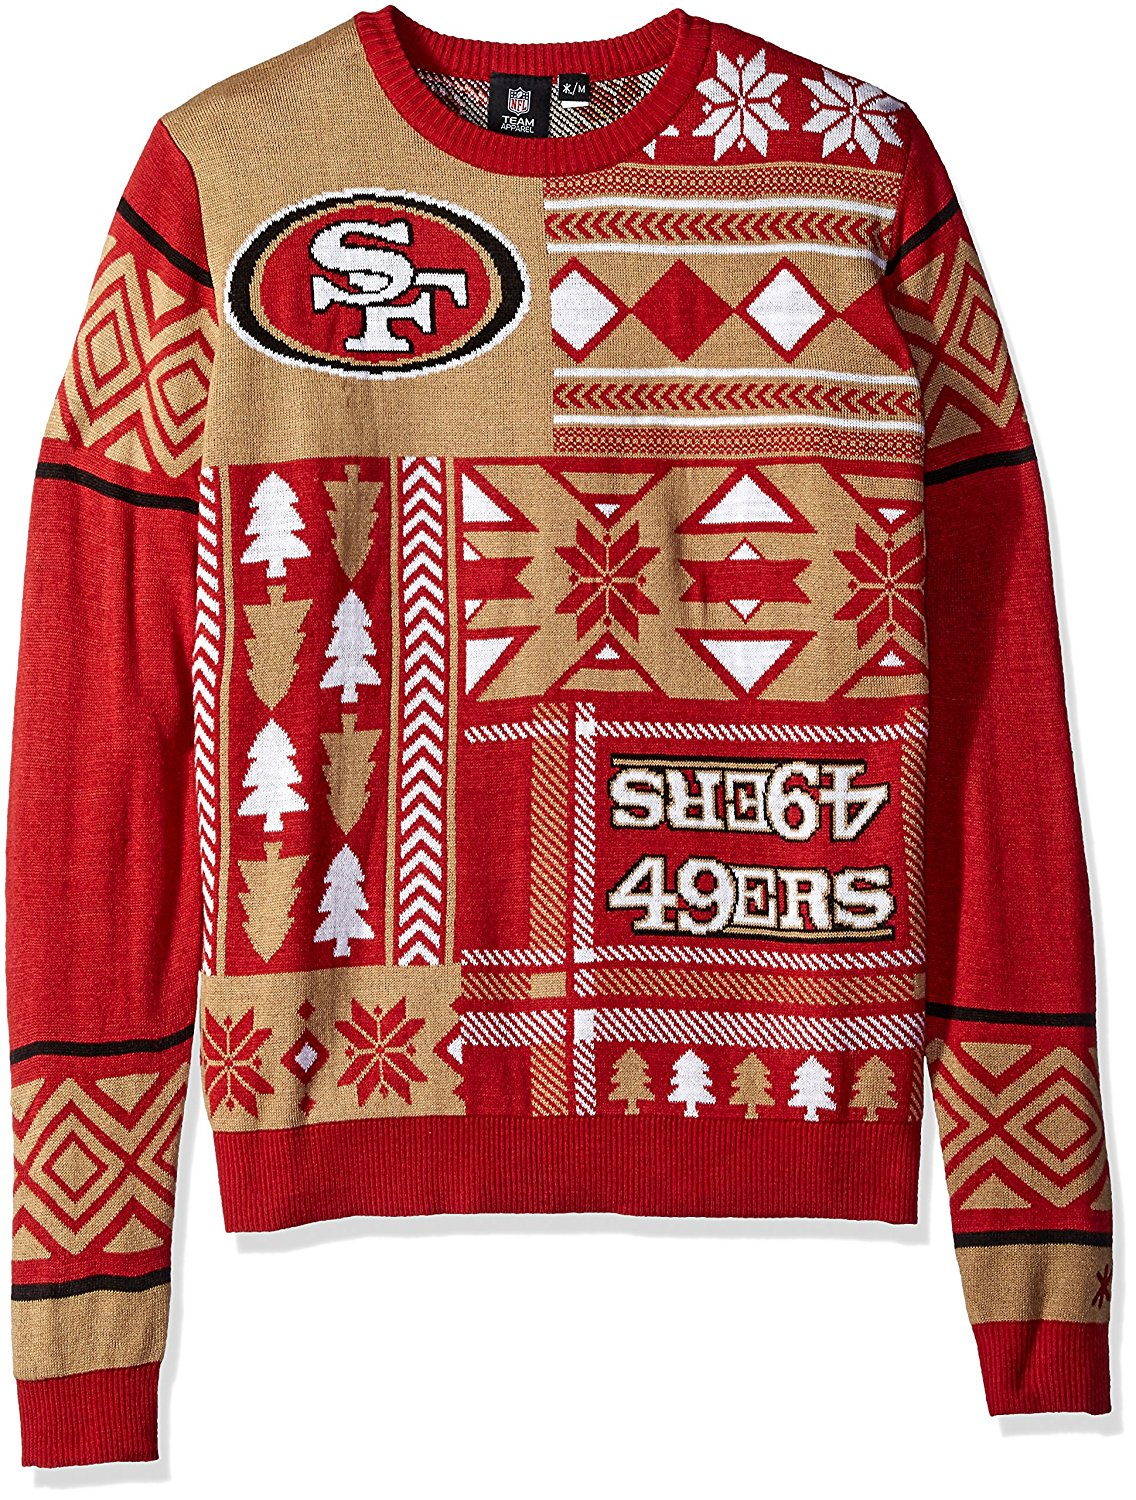 premium selection bb3f2 e9834 6 Ugly 49ers Sweaters To Keep The Cold Away | Hoodline